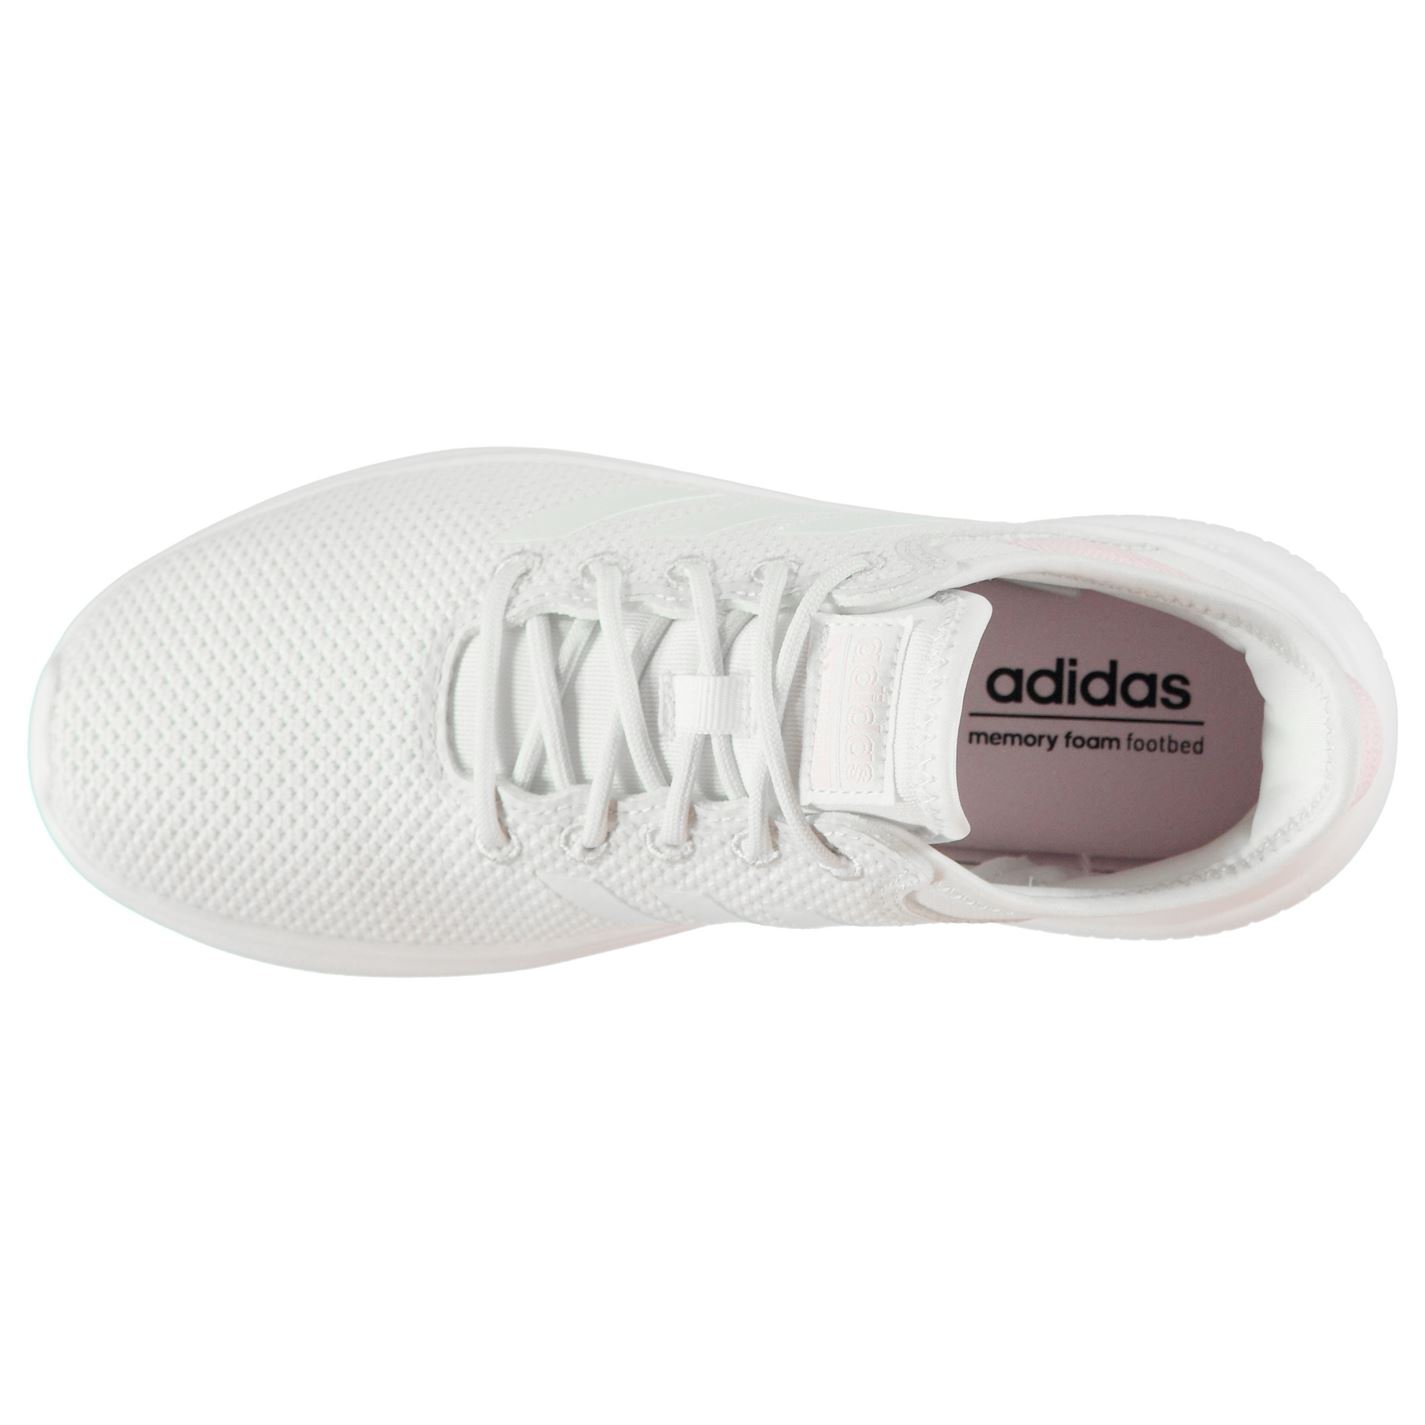 adidas Cloud Foam QT Flex Sneakers Ladies Runners Laces Fastened Ventilated | eBay